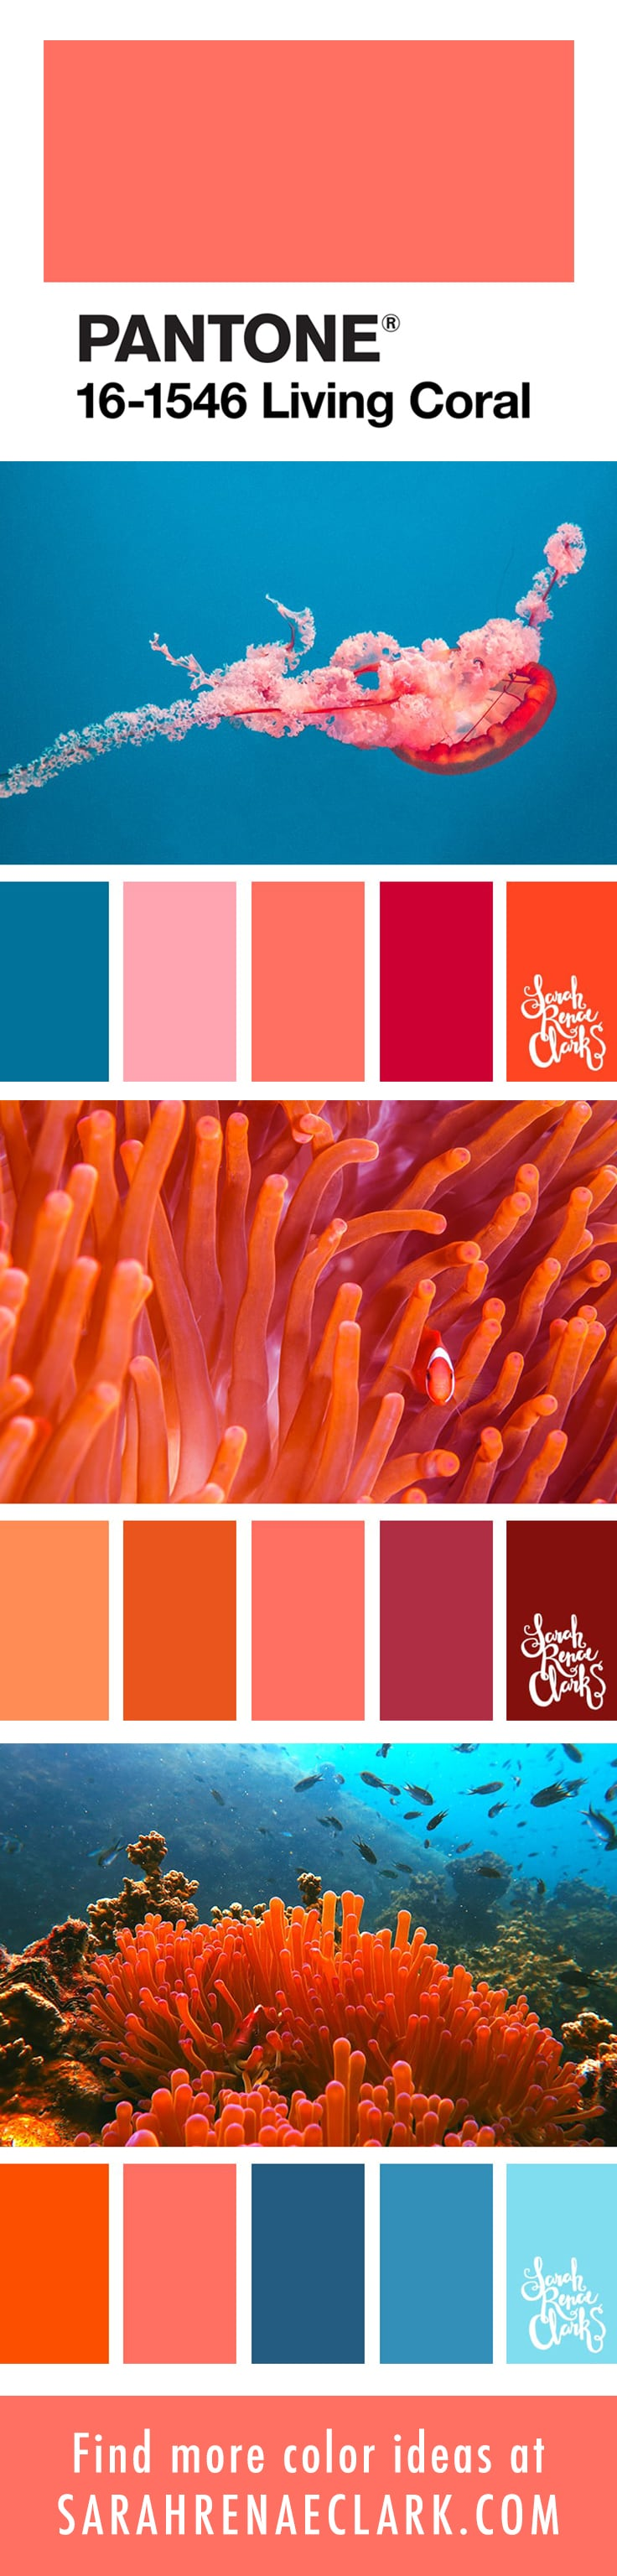 PANTONE Living Coral color schemes